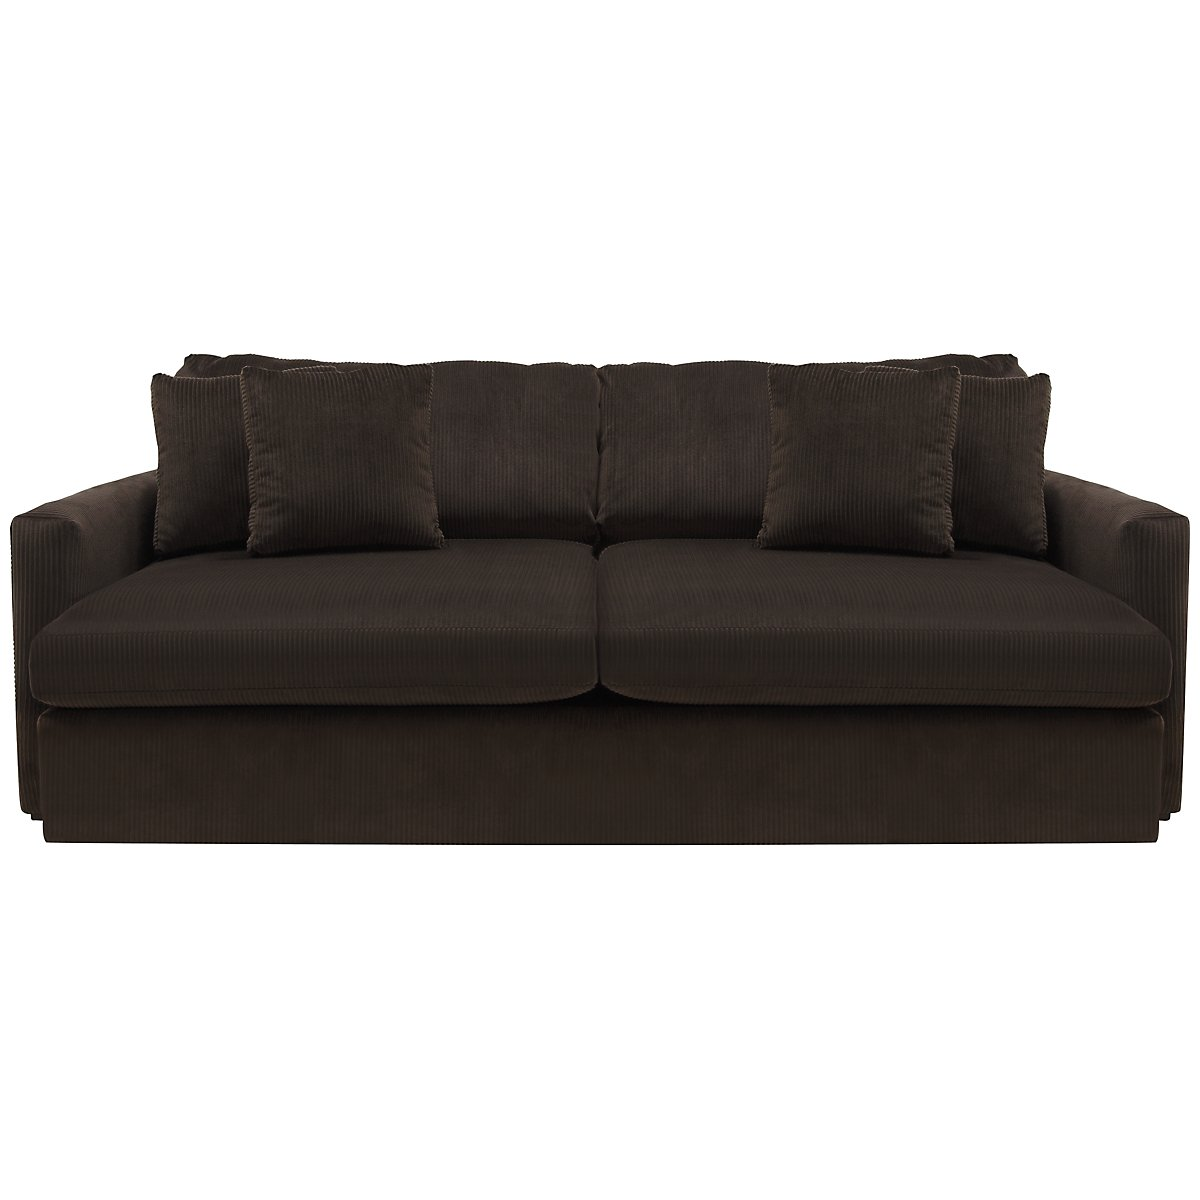 Dark brown microfiber sofa abson living monrovia sectional for Microfiber sectional sofa